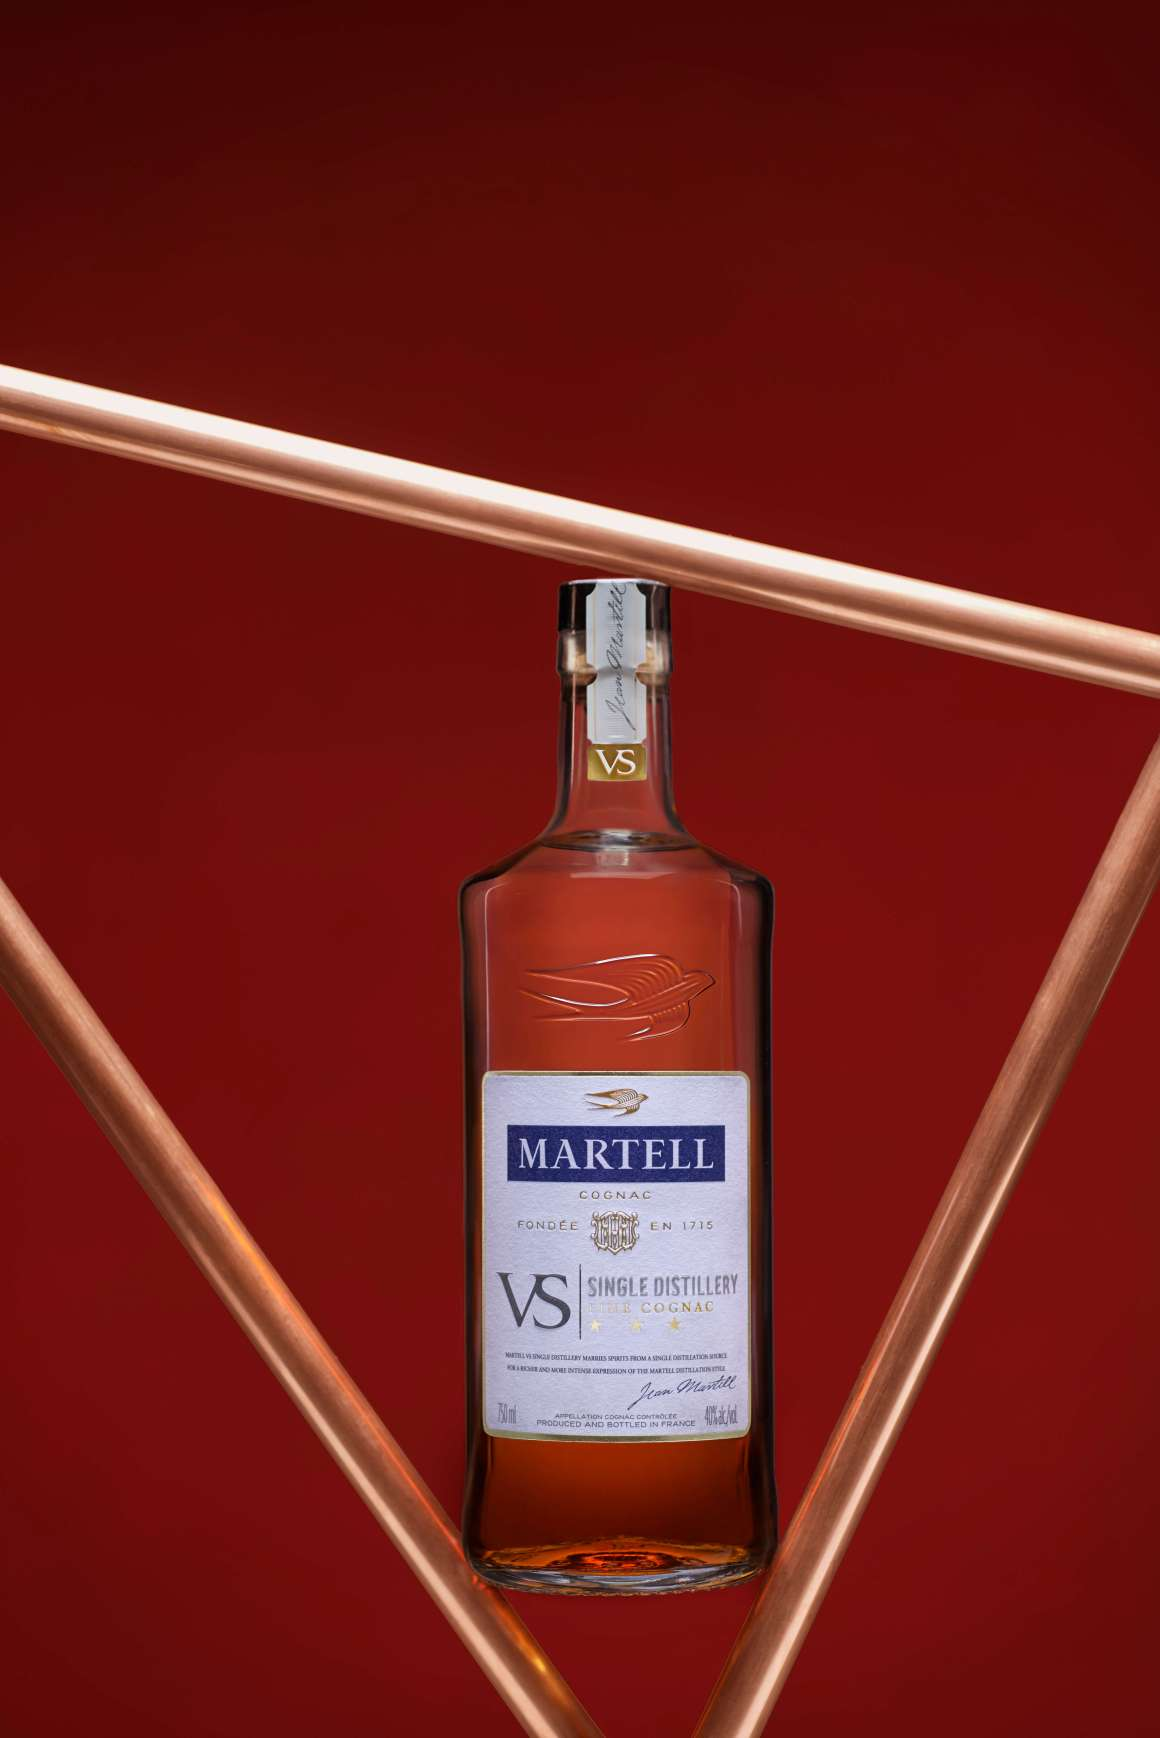 martell-vs-single-distillery-digital-picture-raw-visual-1